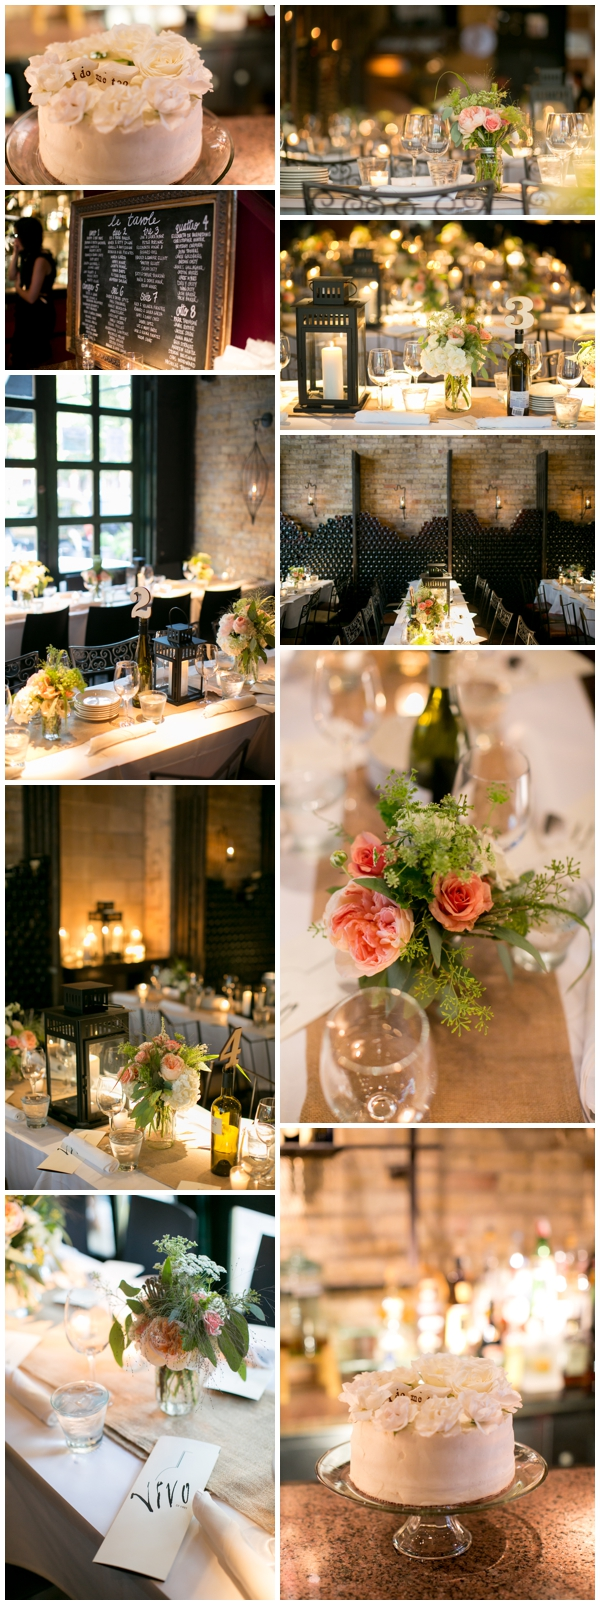 Chicago-vera-wang-wedding-photography-Vivo-rustic-montrose_0034